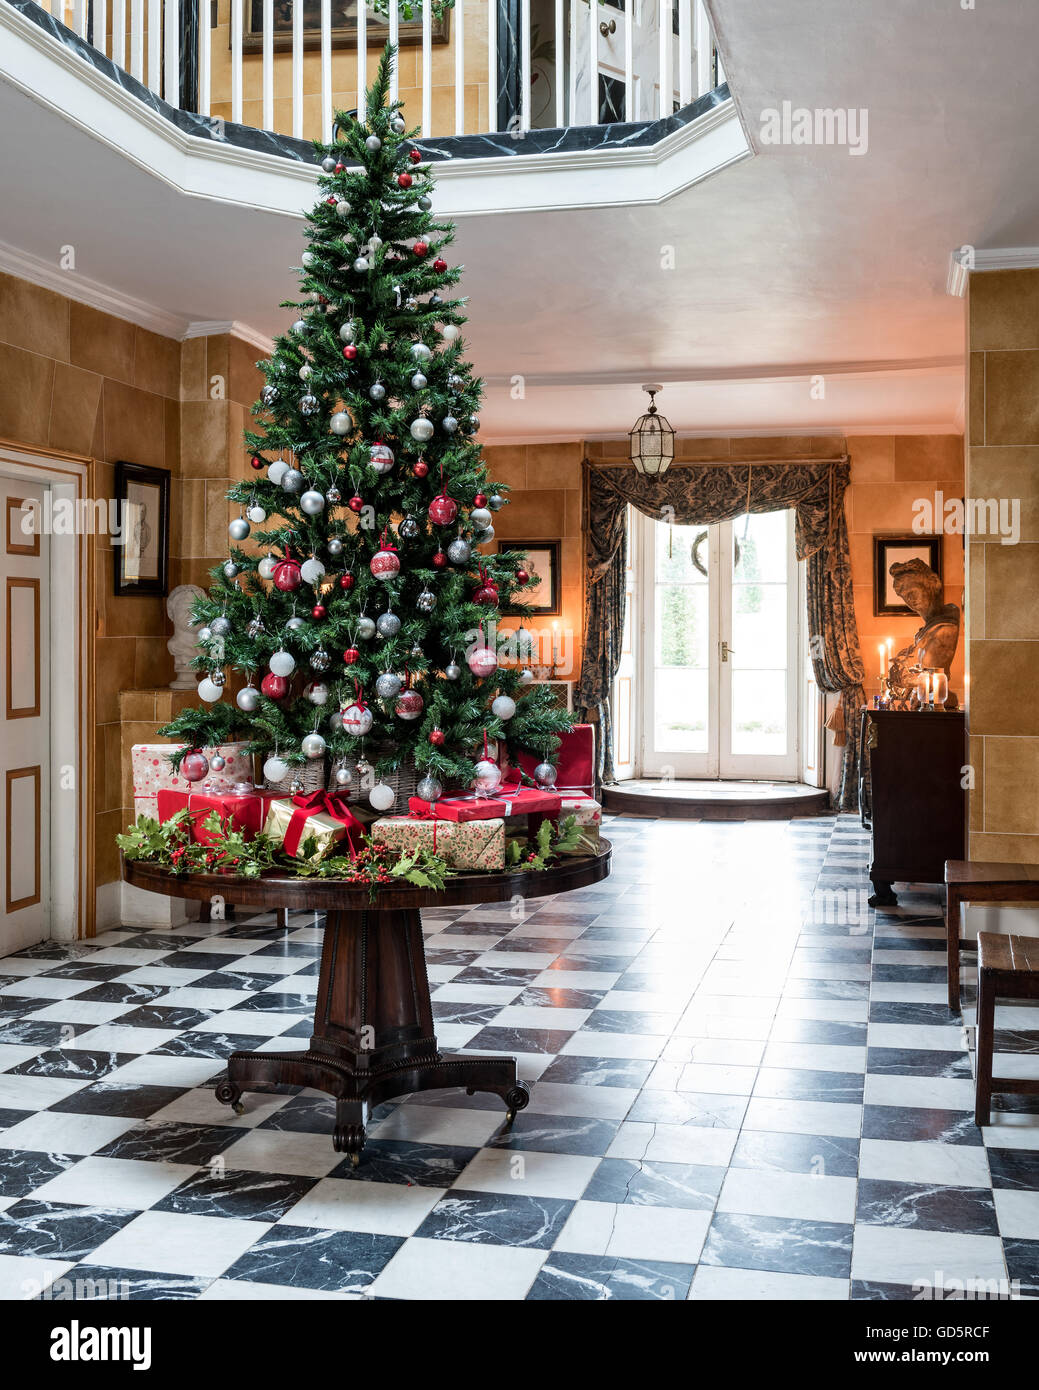 Christmas tree on wooden table with pedestal base in entrance hall of Surrey Rectory, England, UK - Stock Image